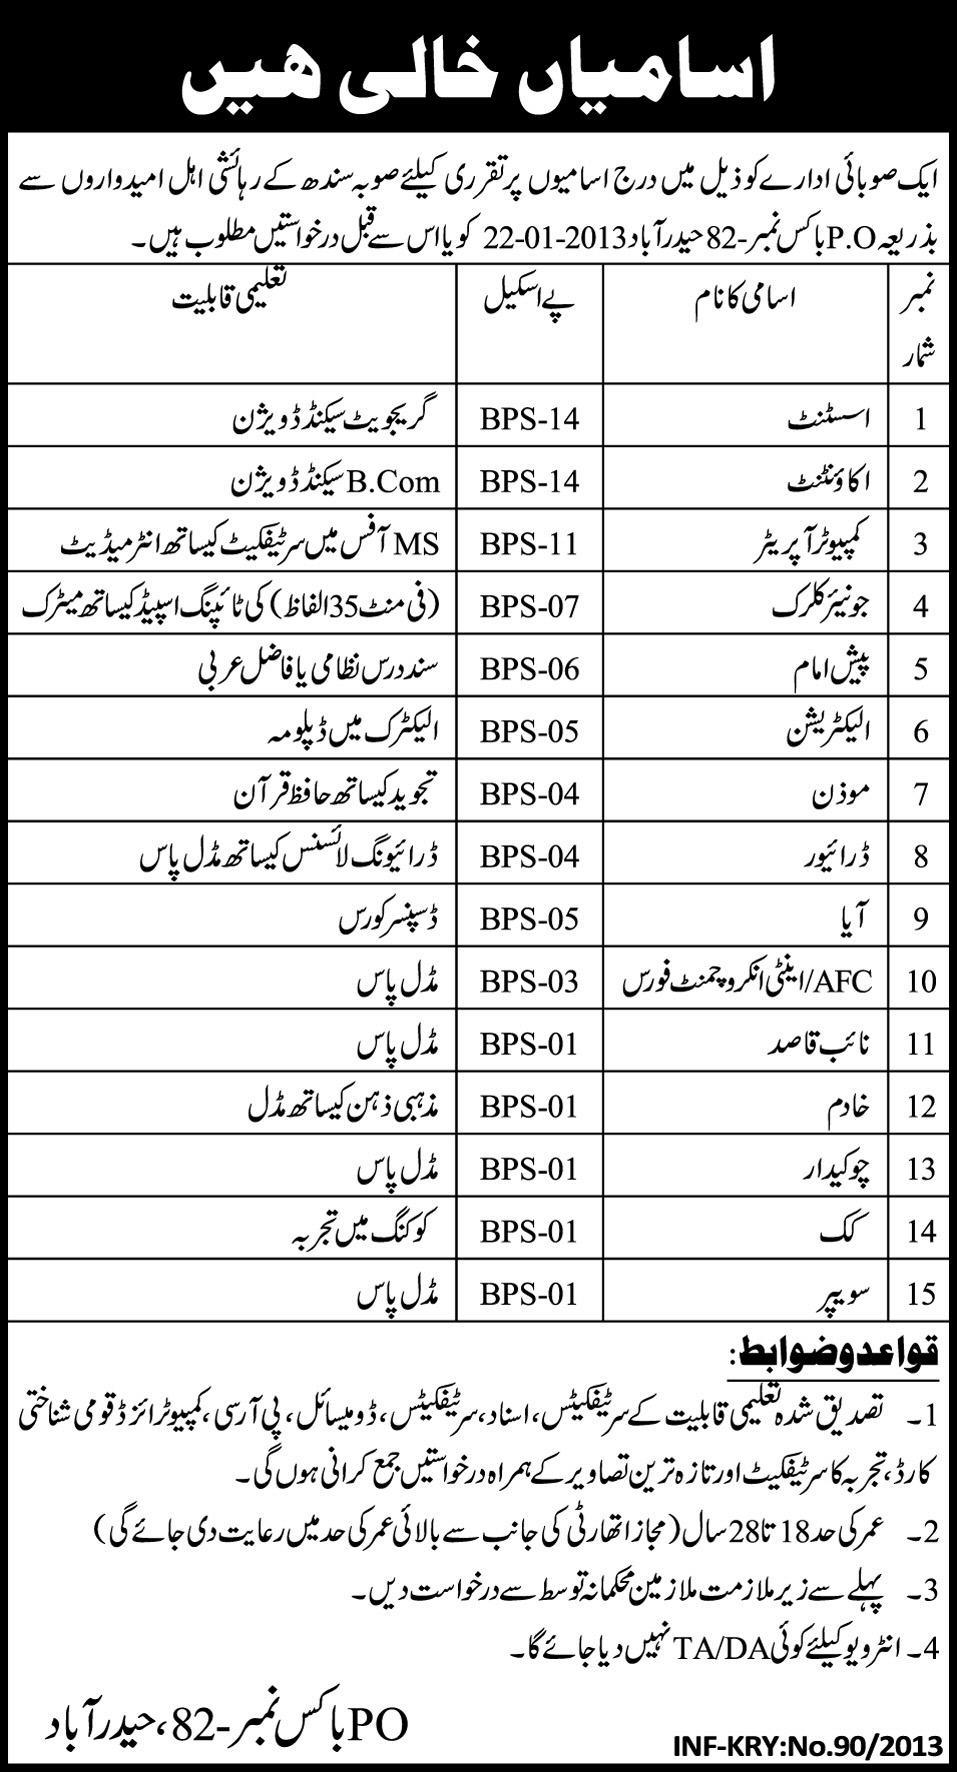 hyderabad based sindh government jobs Jobs in Hyderabad Based Sindh Government Organization